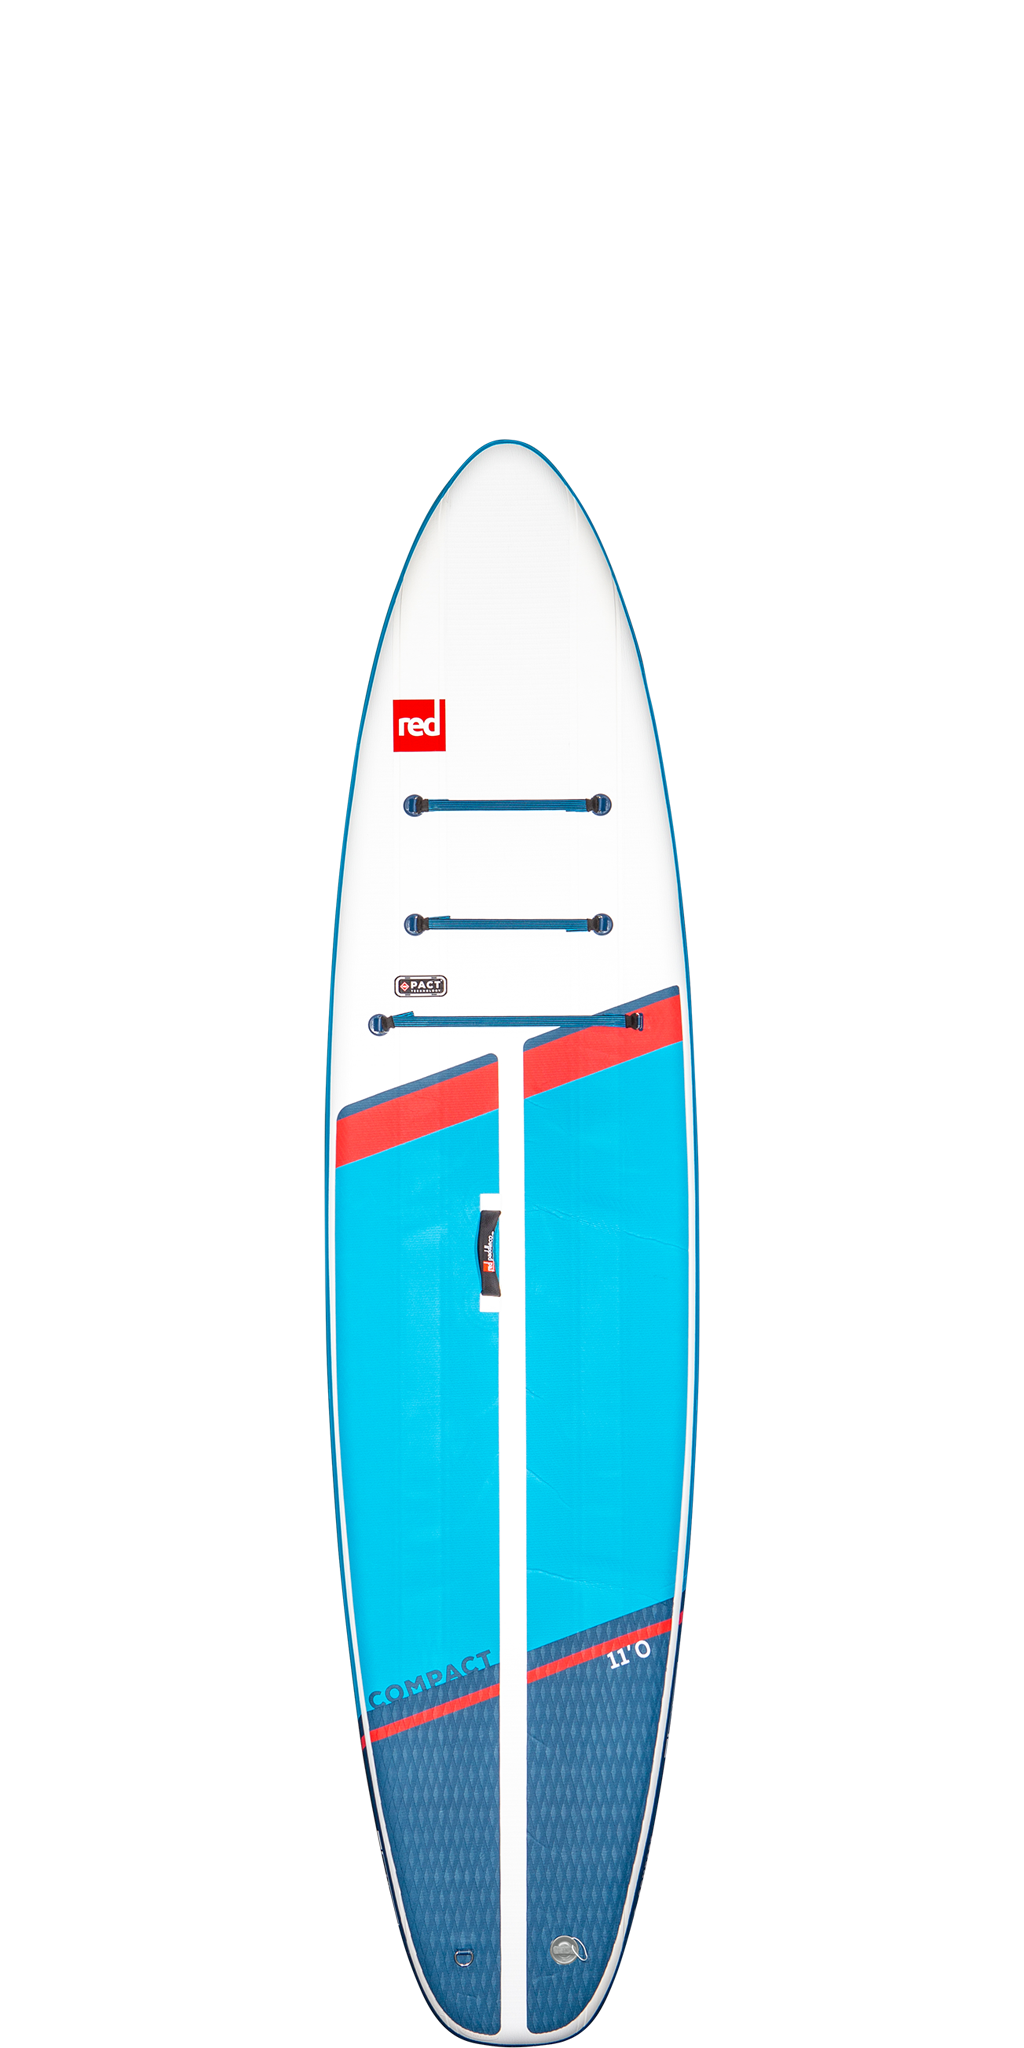 Red Paddle Co 11' Compact SUP Front